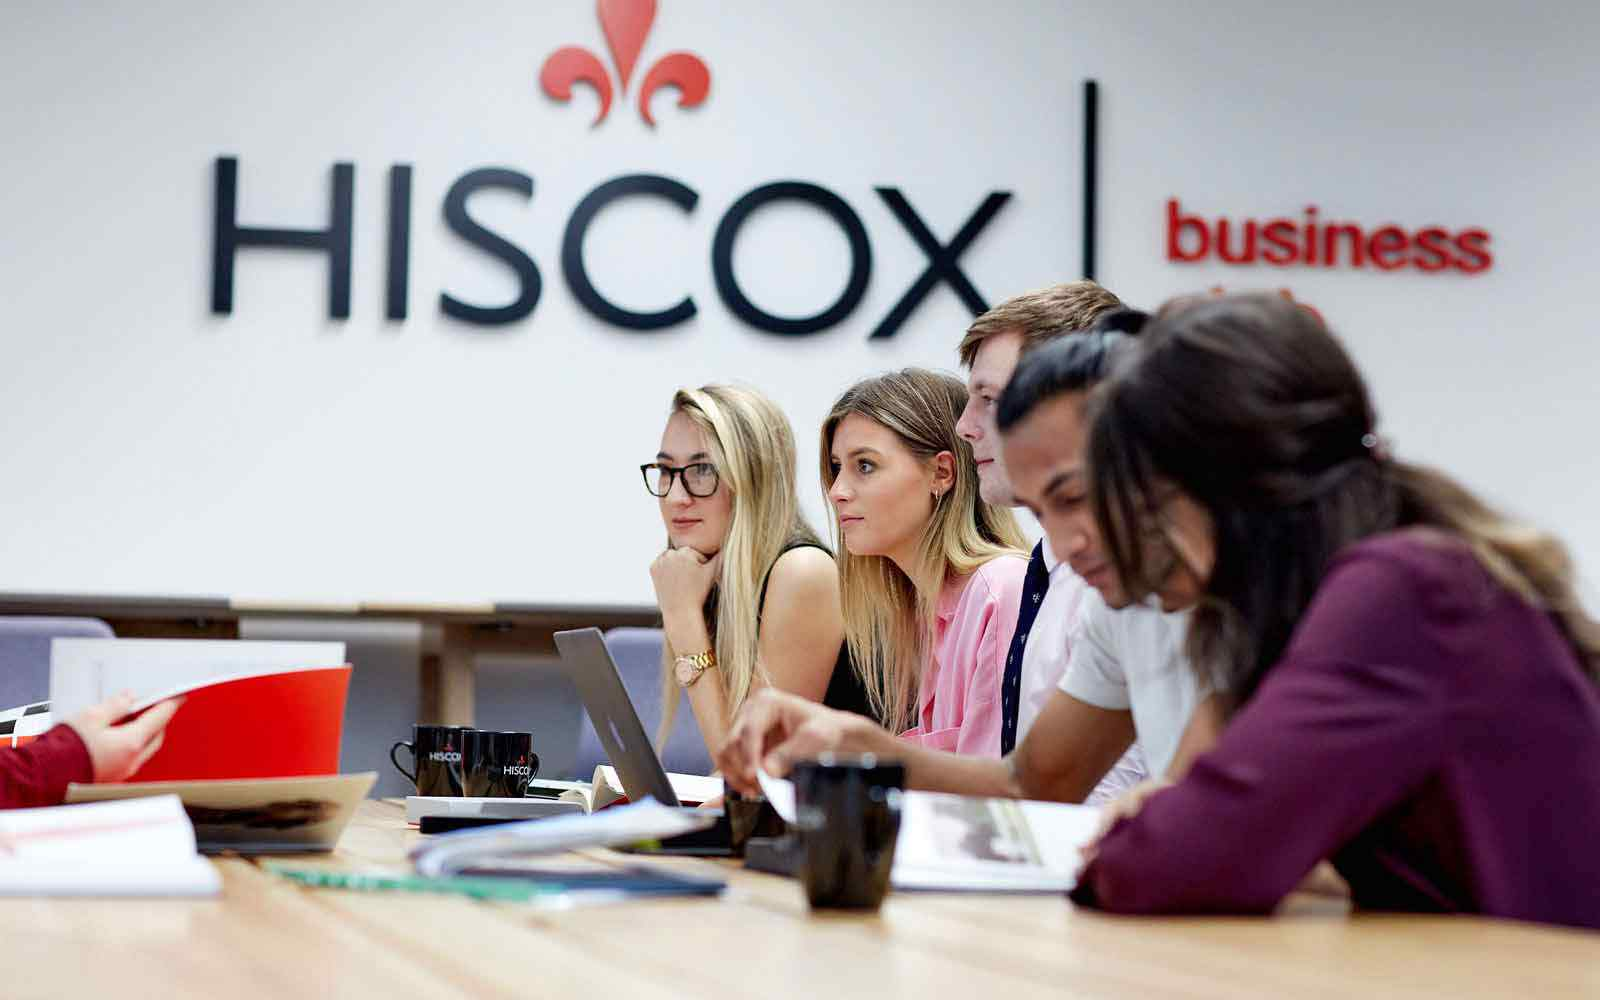 Students in workshop at Hiscox